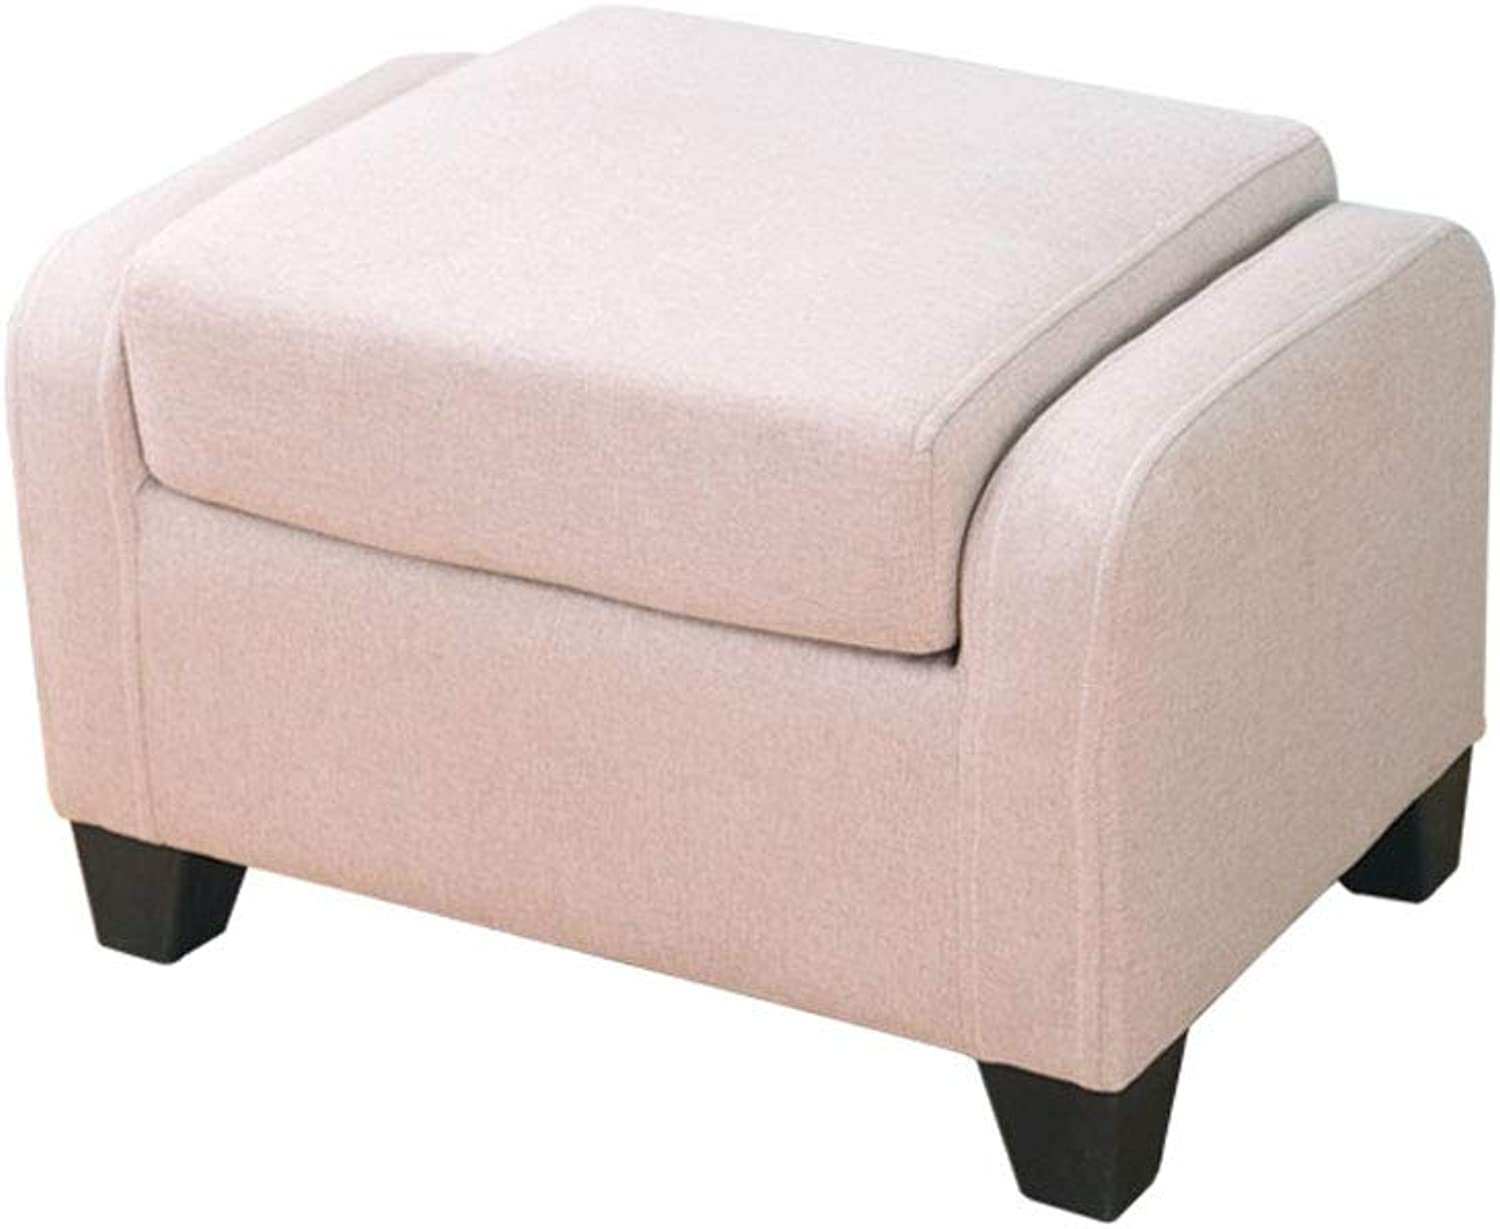 Sofa Stool Fabric Square Soft Seat Can Be Used As Sofa Back Lazy Stool V (color   Beige, Size   L58CMXW40.5CMXH37.5CM)